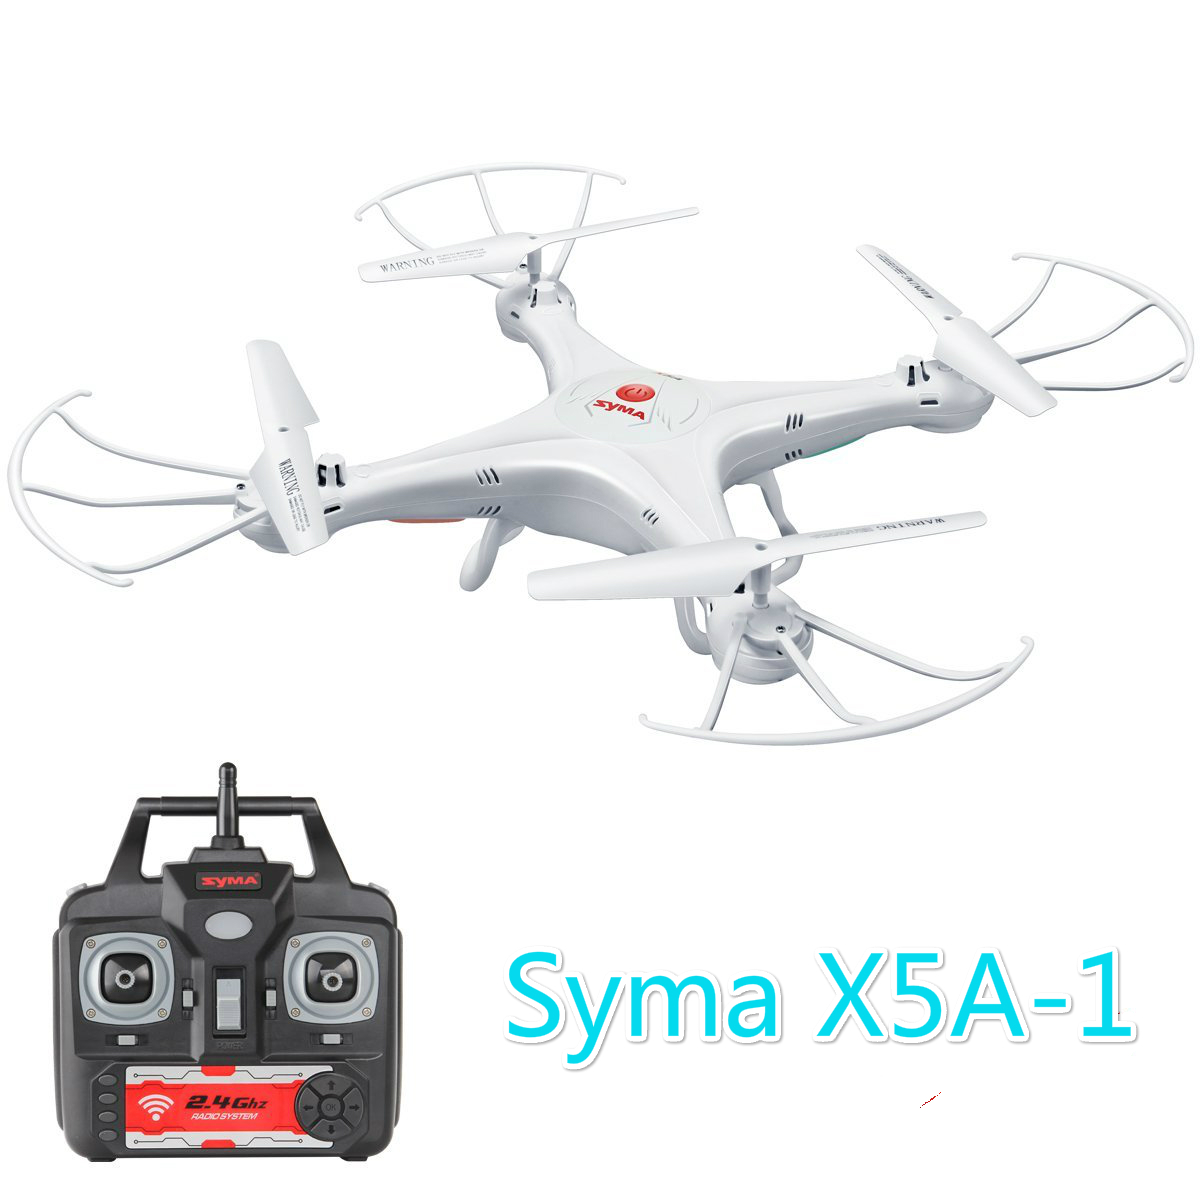 Syma X5 Explorers RC Quadcopter 2.4G 4CH with 6 Axle Gyro BNF Mode2